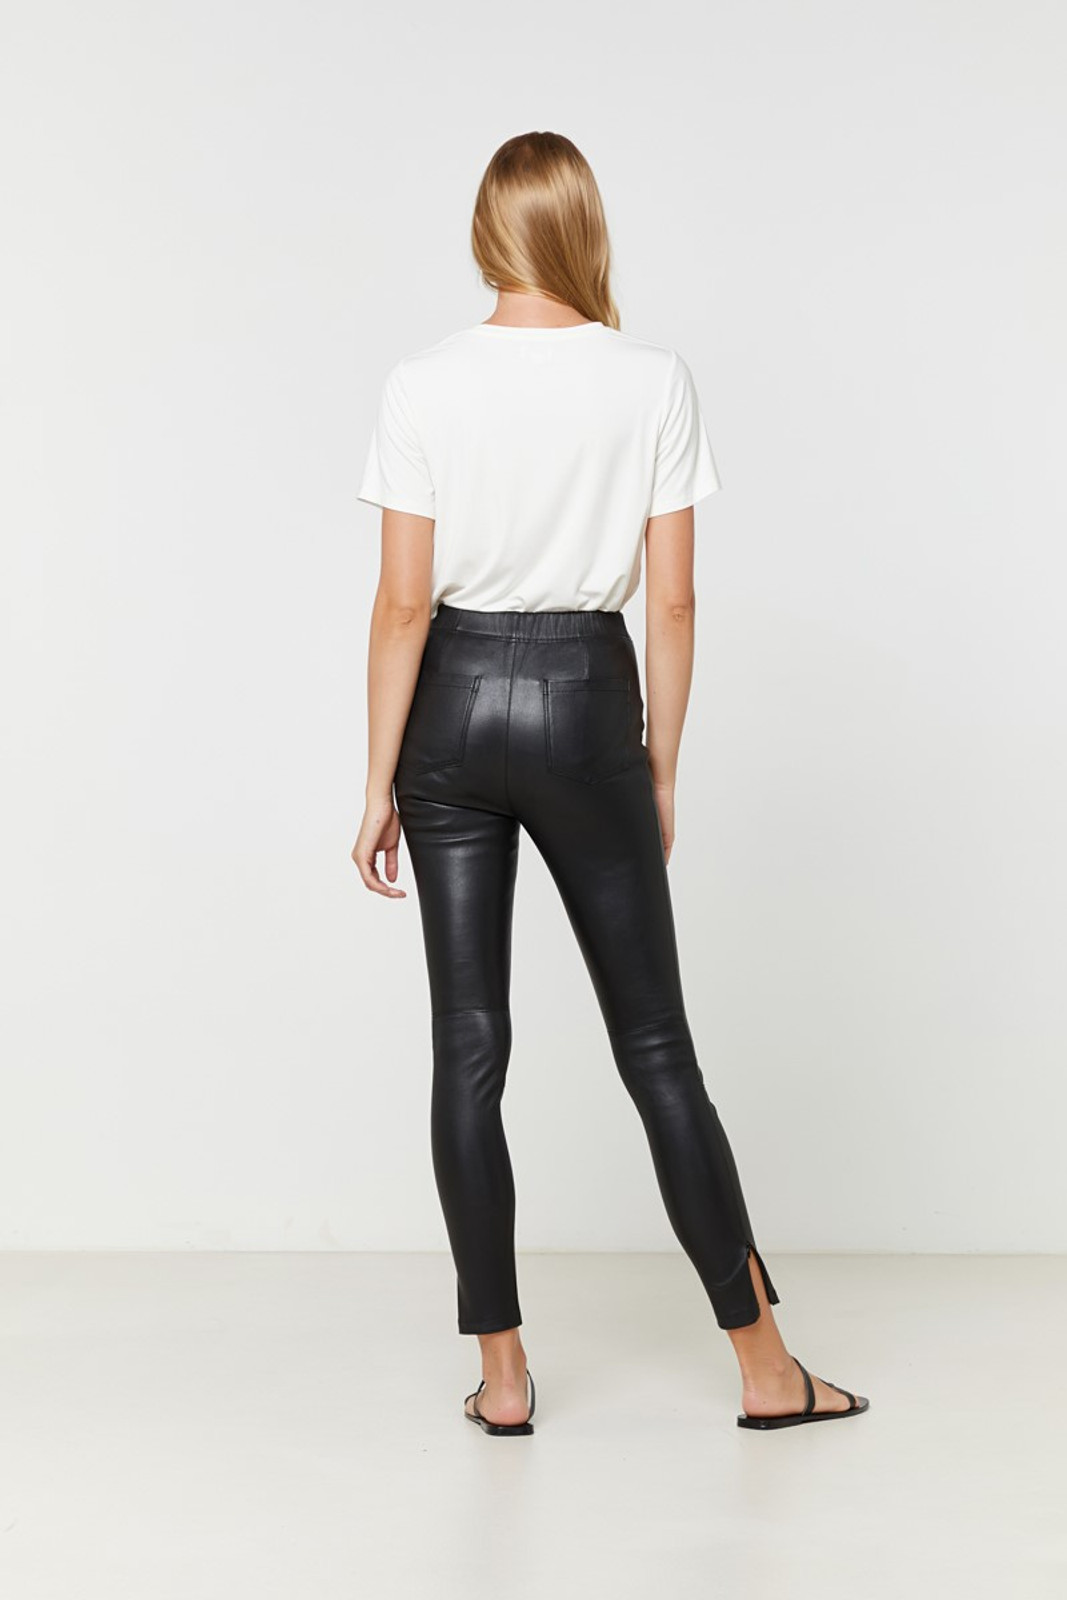 Elka Collective Rosa Leather Pant Black  7